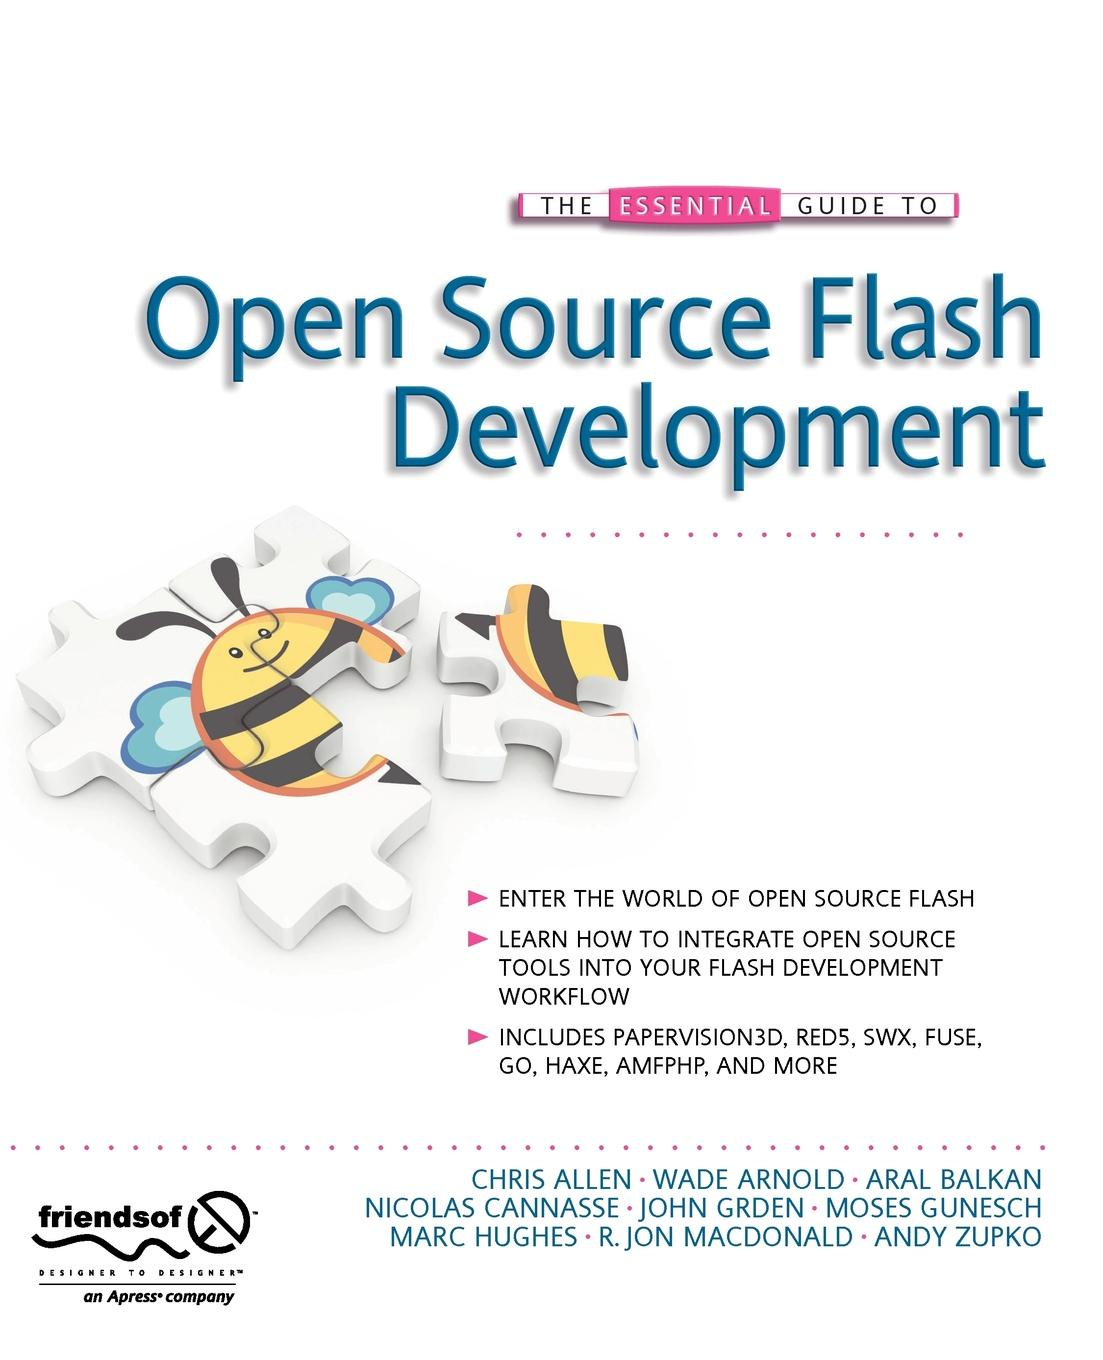 Chris Fca Allen, Wade Arnold, Aral Balkan The Essential Guide to Open Source Flash Development geoff daniels essential guide to blood groups